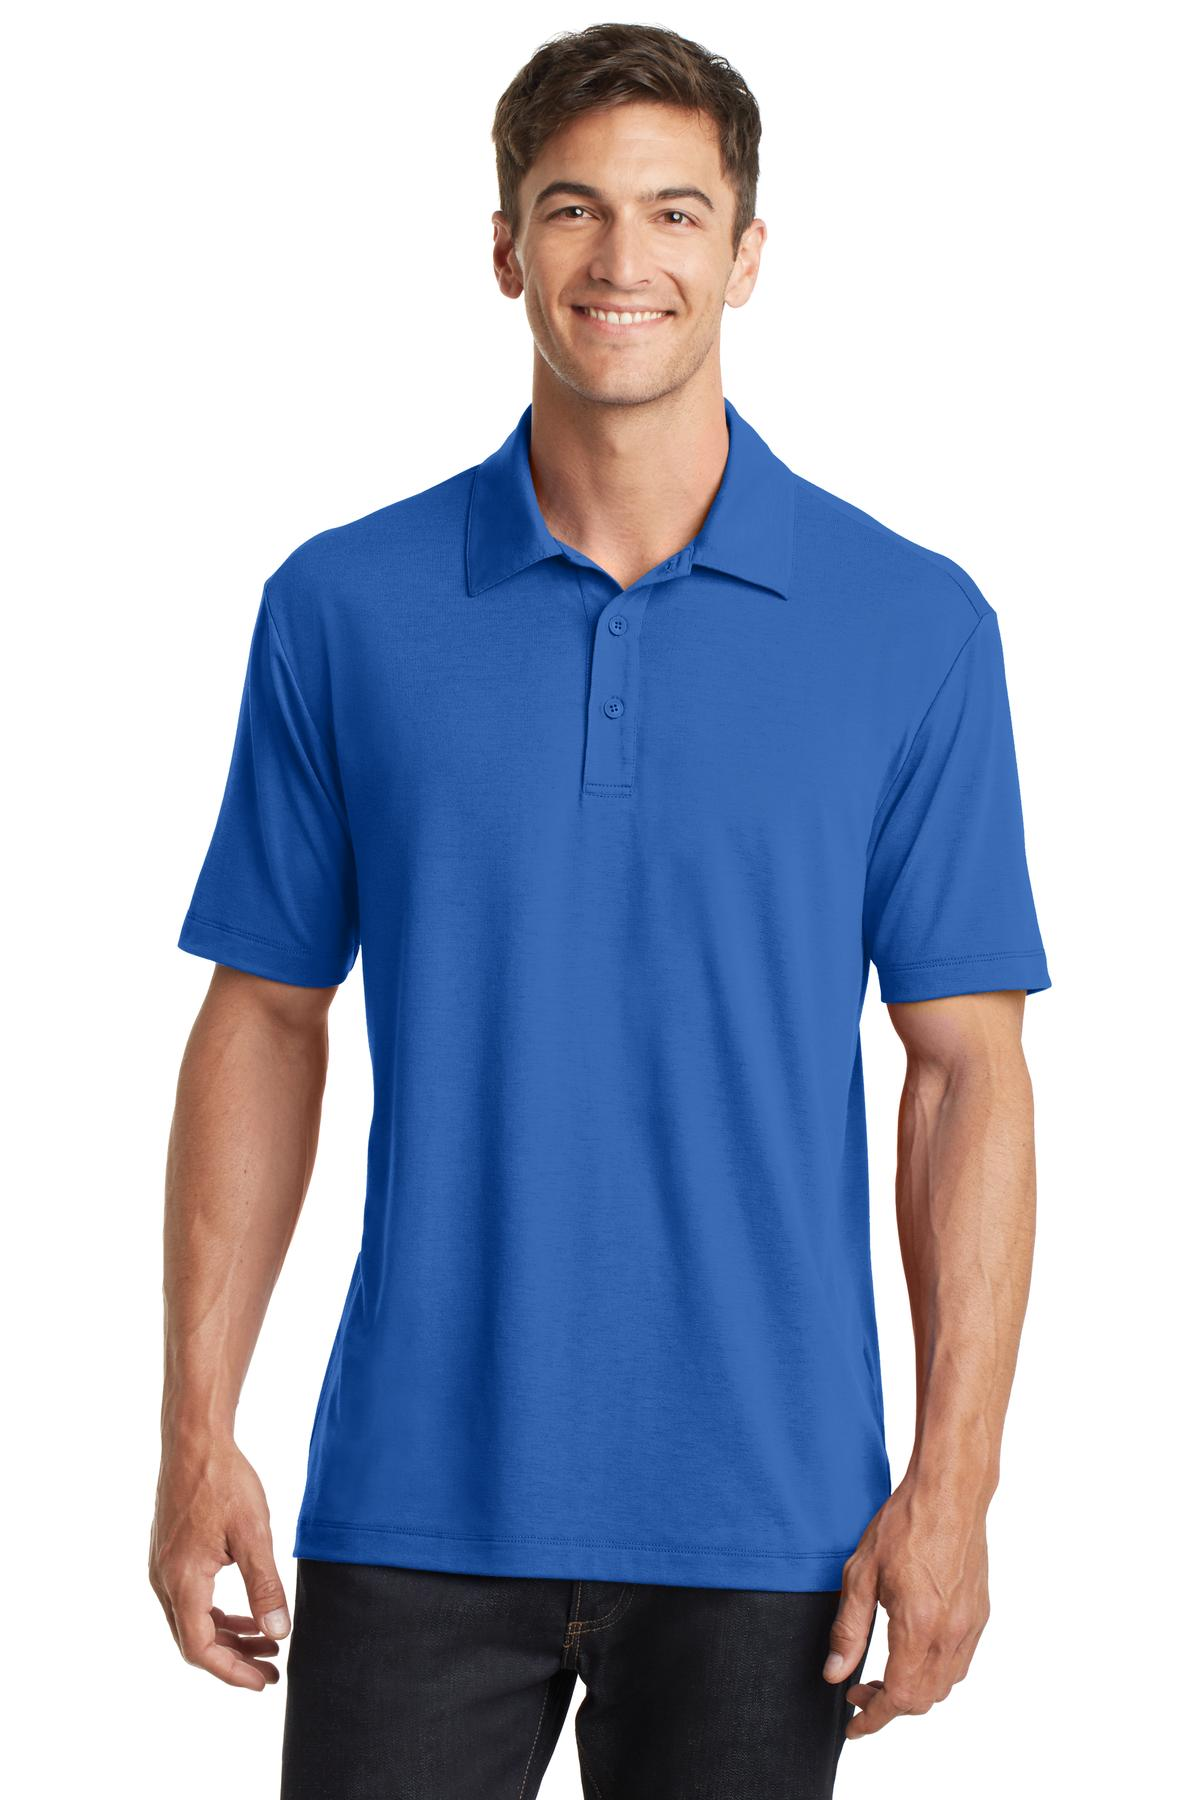 Sterling Grey Port Authority ® UV Choice Pique Polo